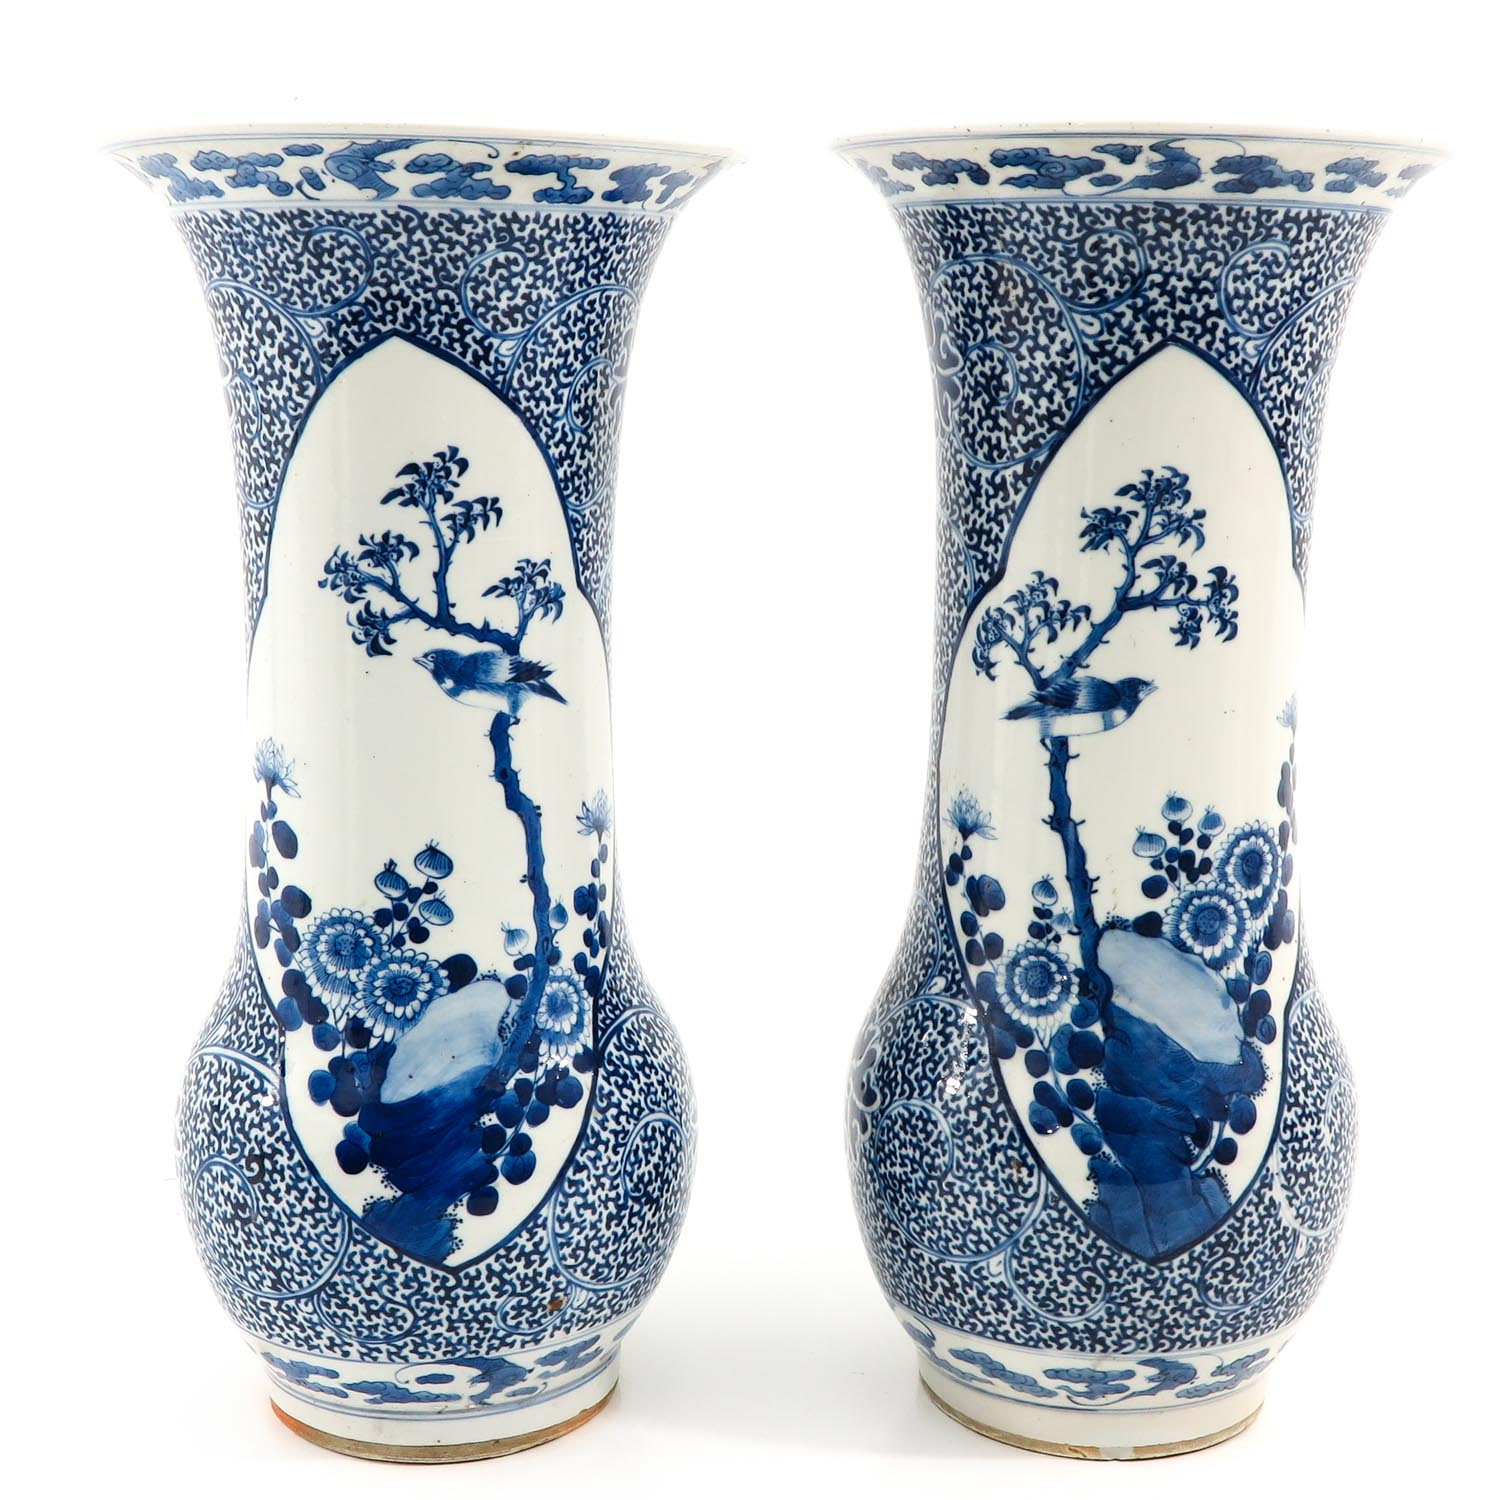 A Pair of Blue and White Vases - Image 3 of 10